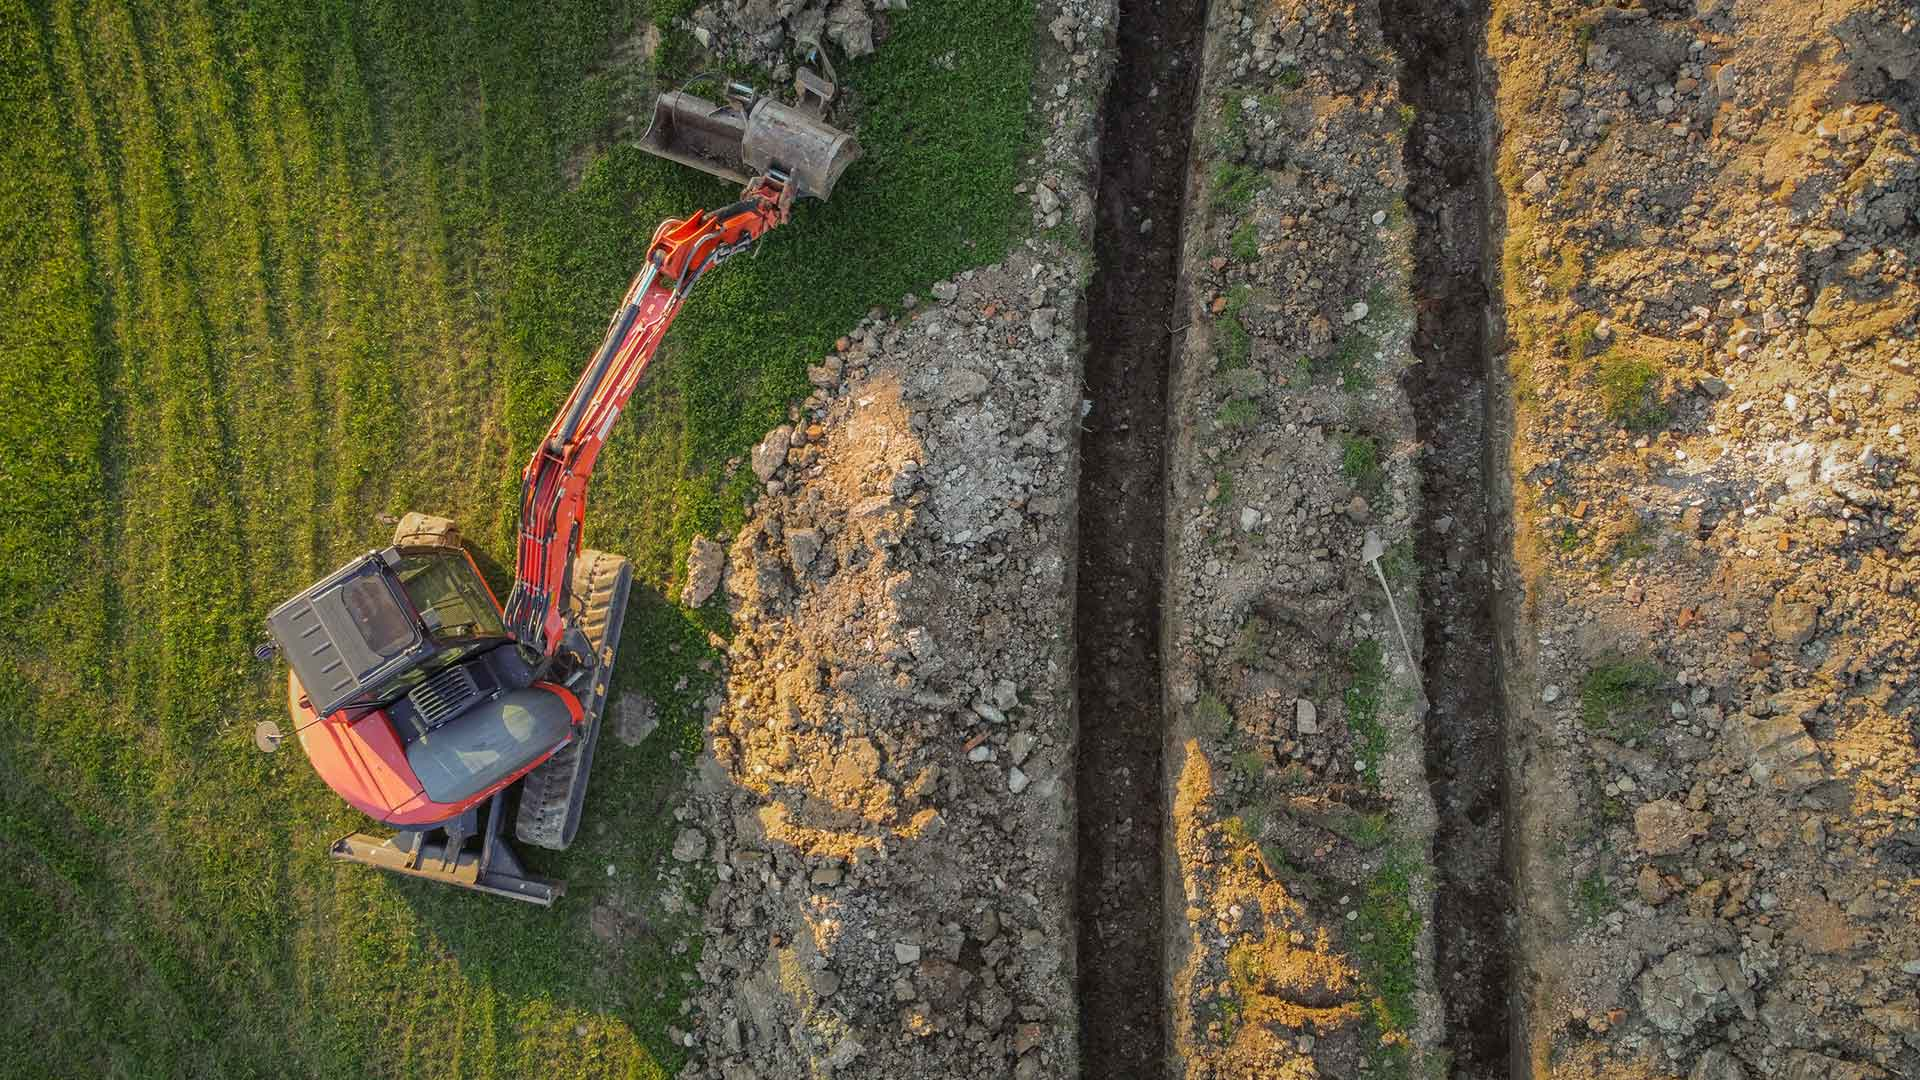 Large digger removing earth from site